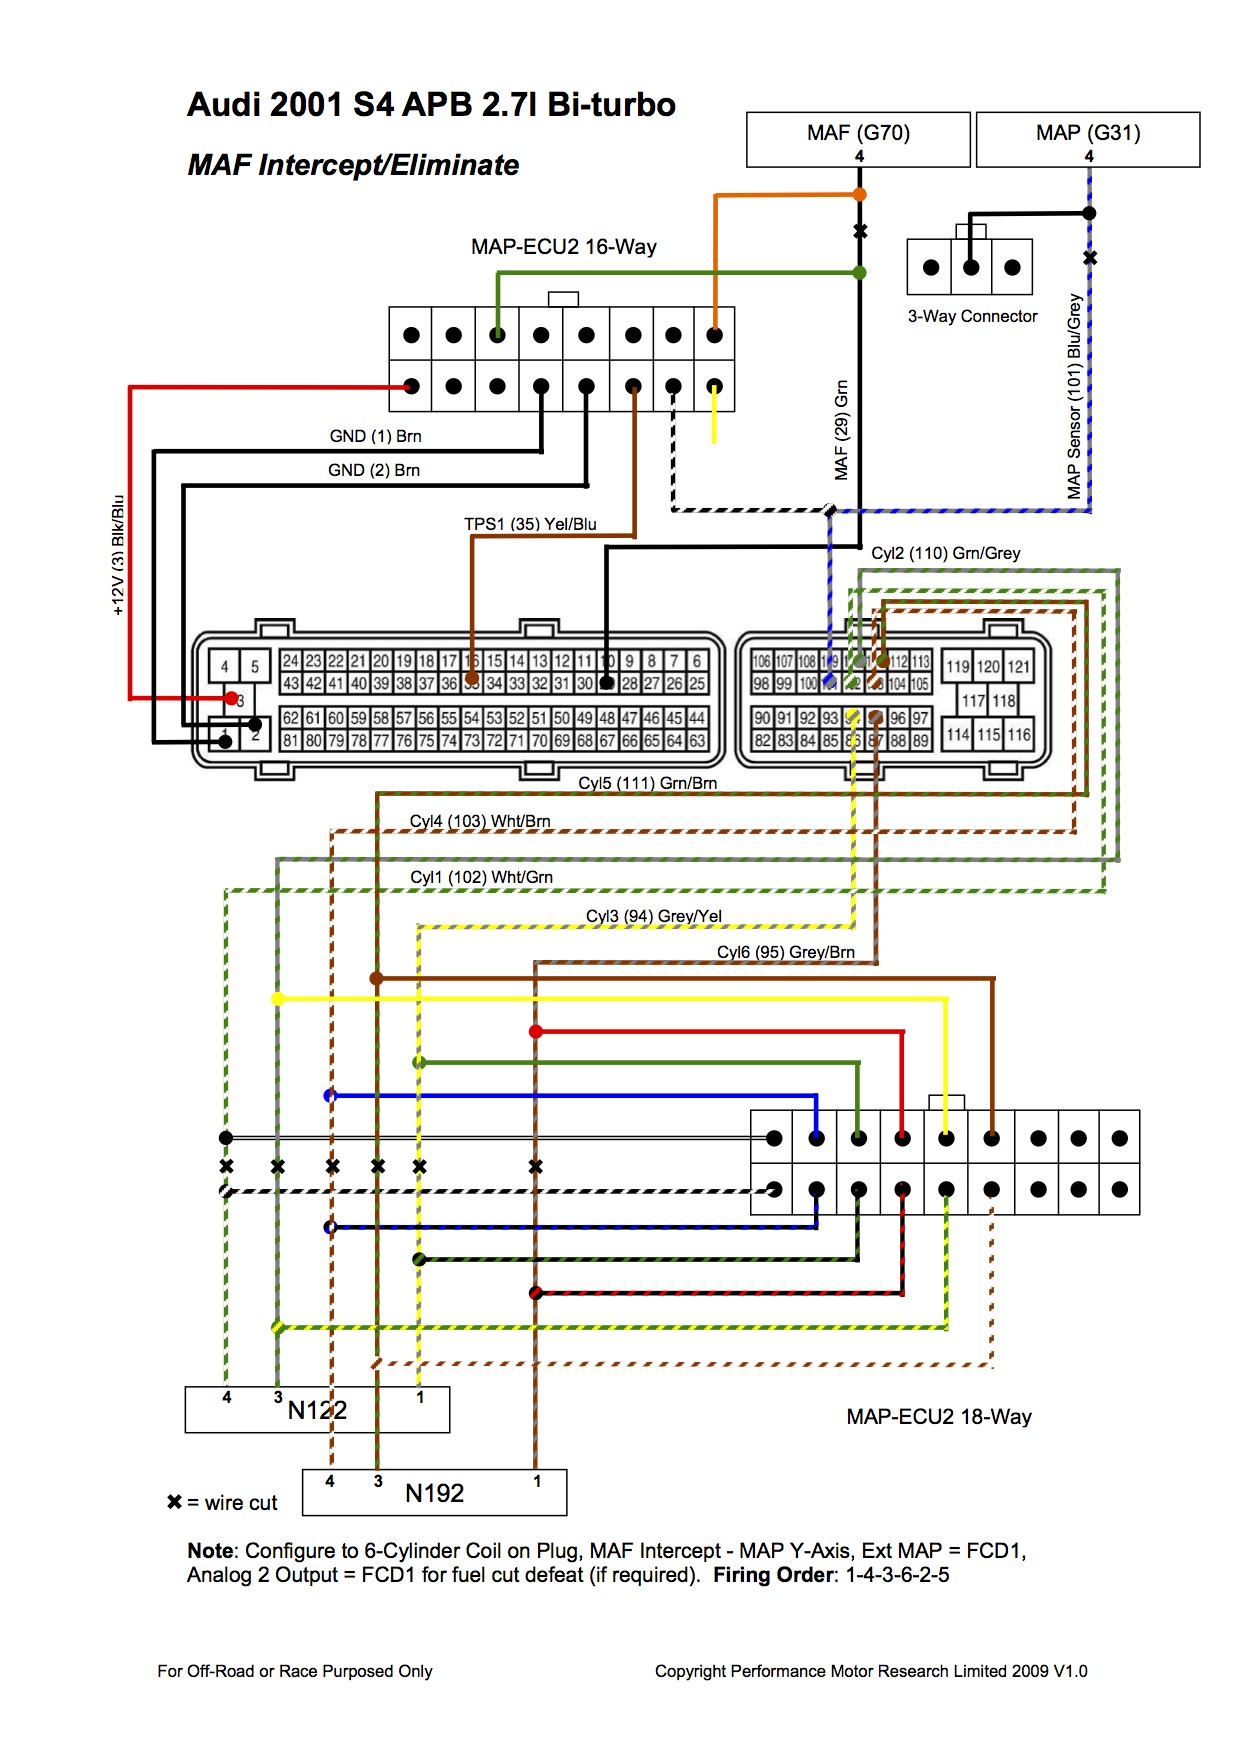 Ram Wiring Diagram | Wiring Diagram on